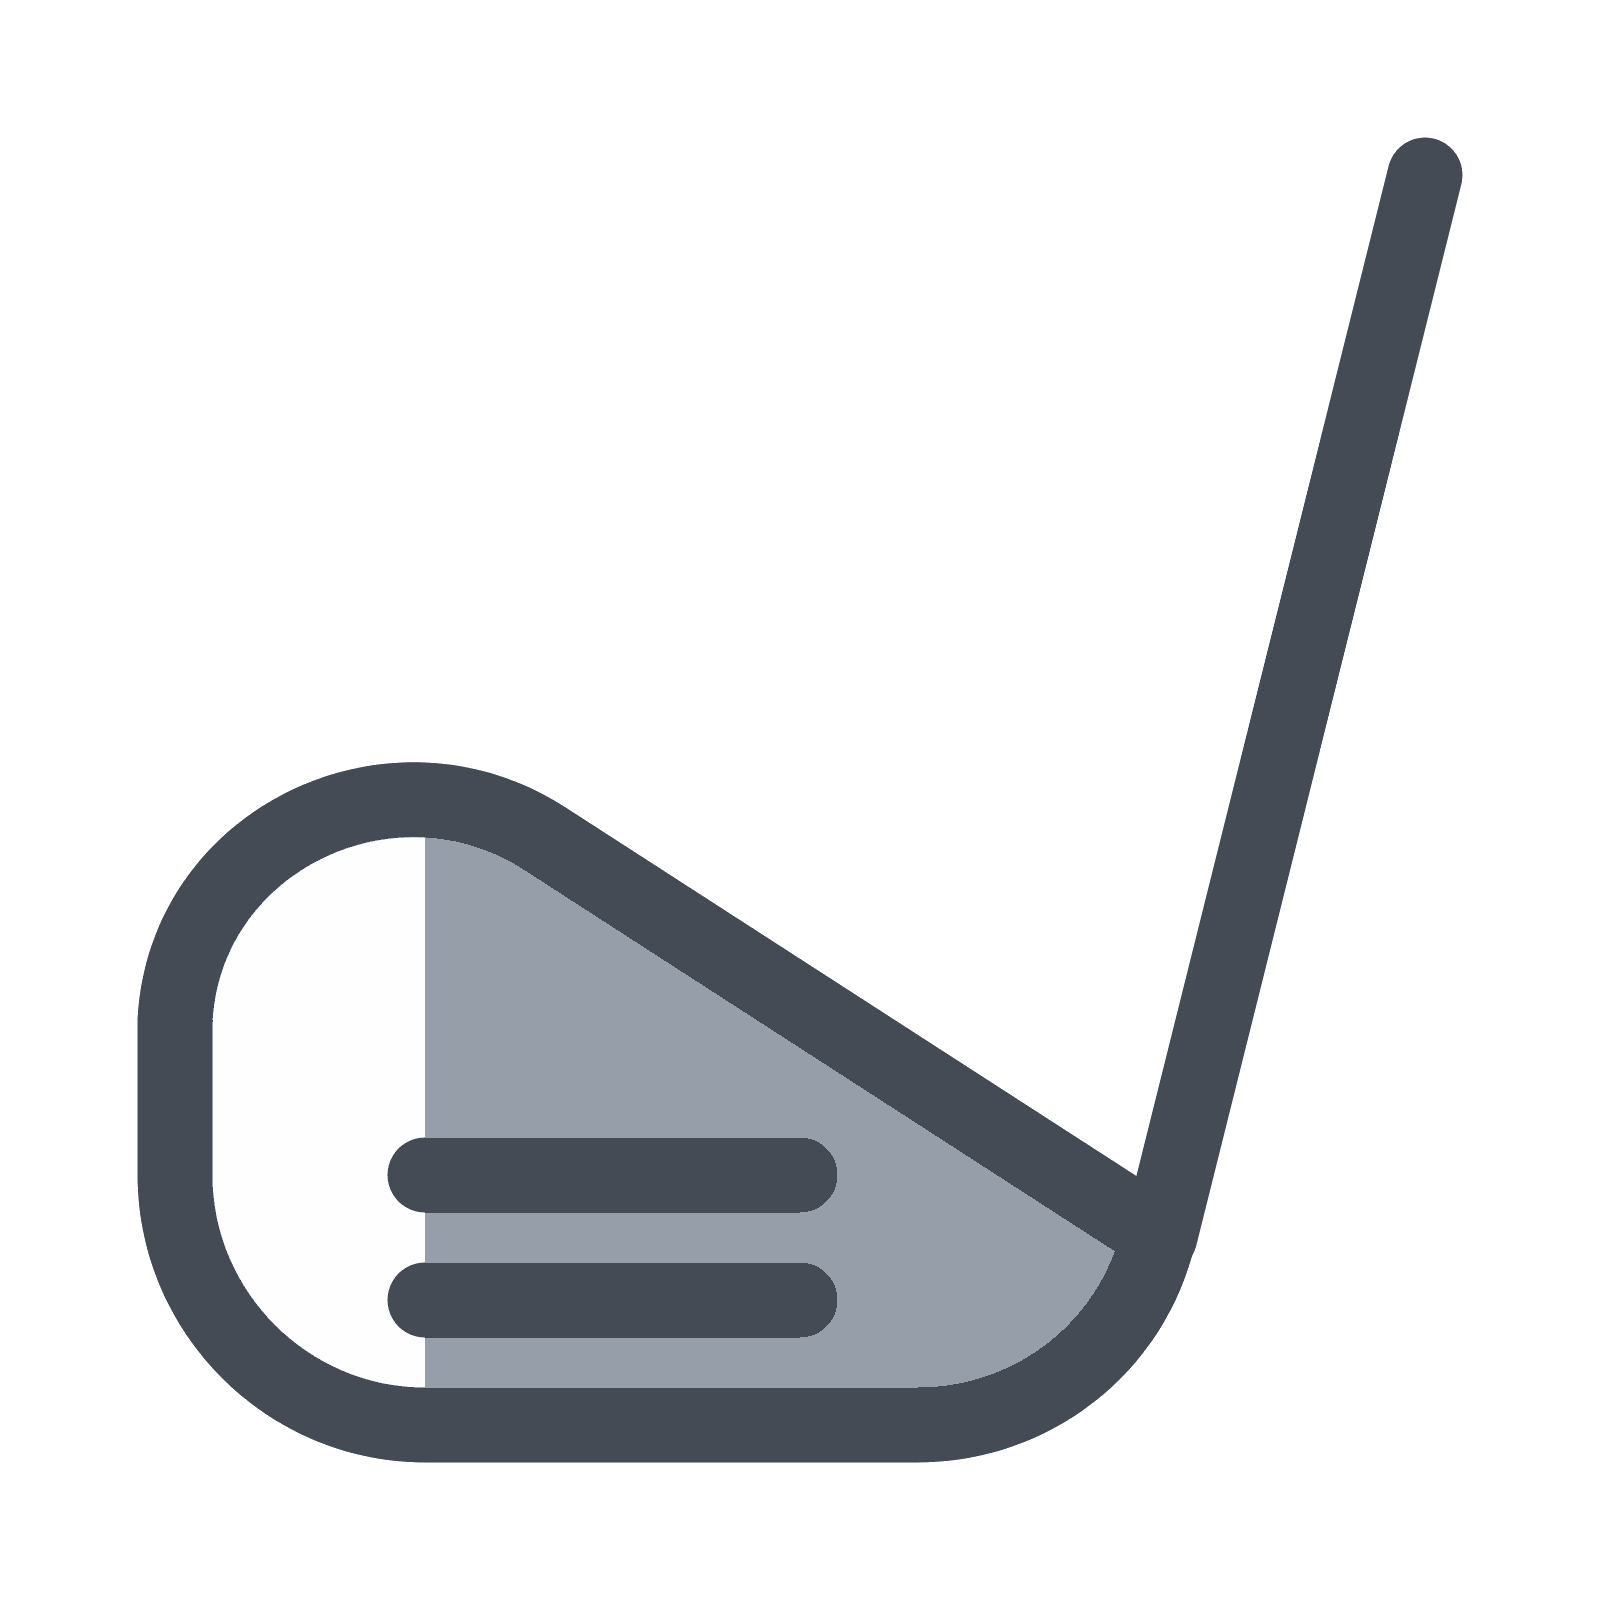 Golf club png. Icon free download and